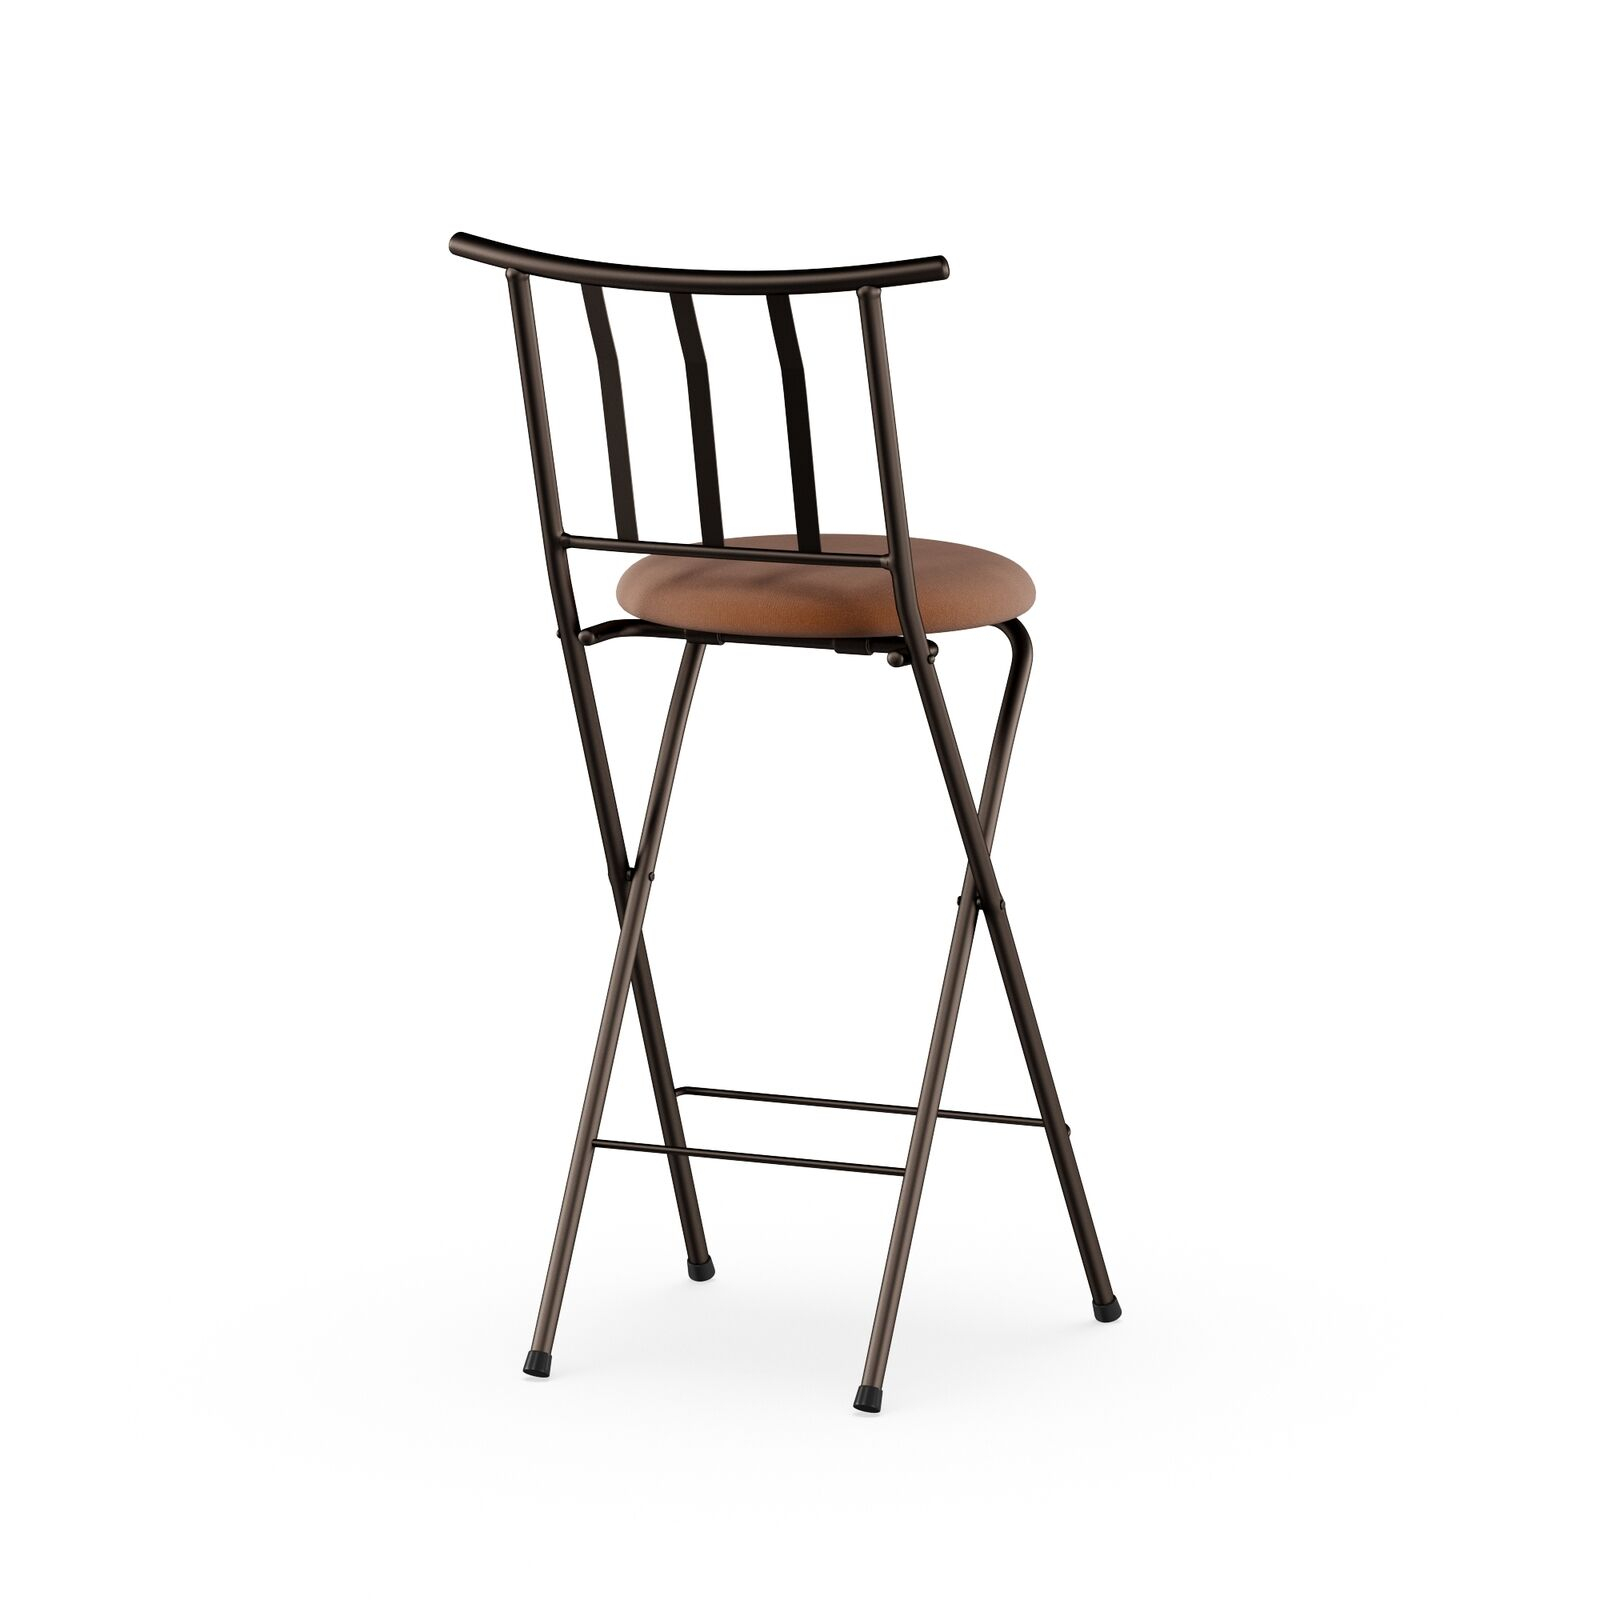 "Mainstays Slat Back Folding 30"" Bronze Bar Stool Multiple Colors Throughout Tillia Ceramic Garden Stools (View 8 of 25)"